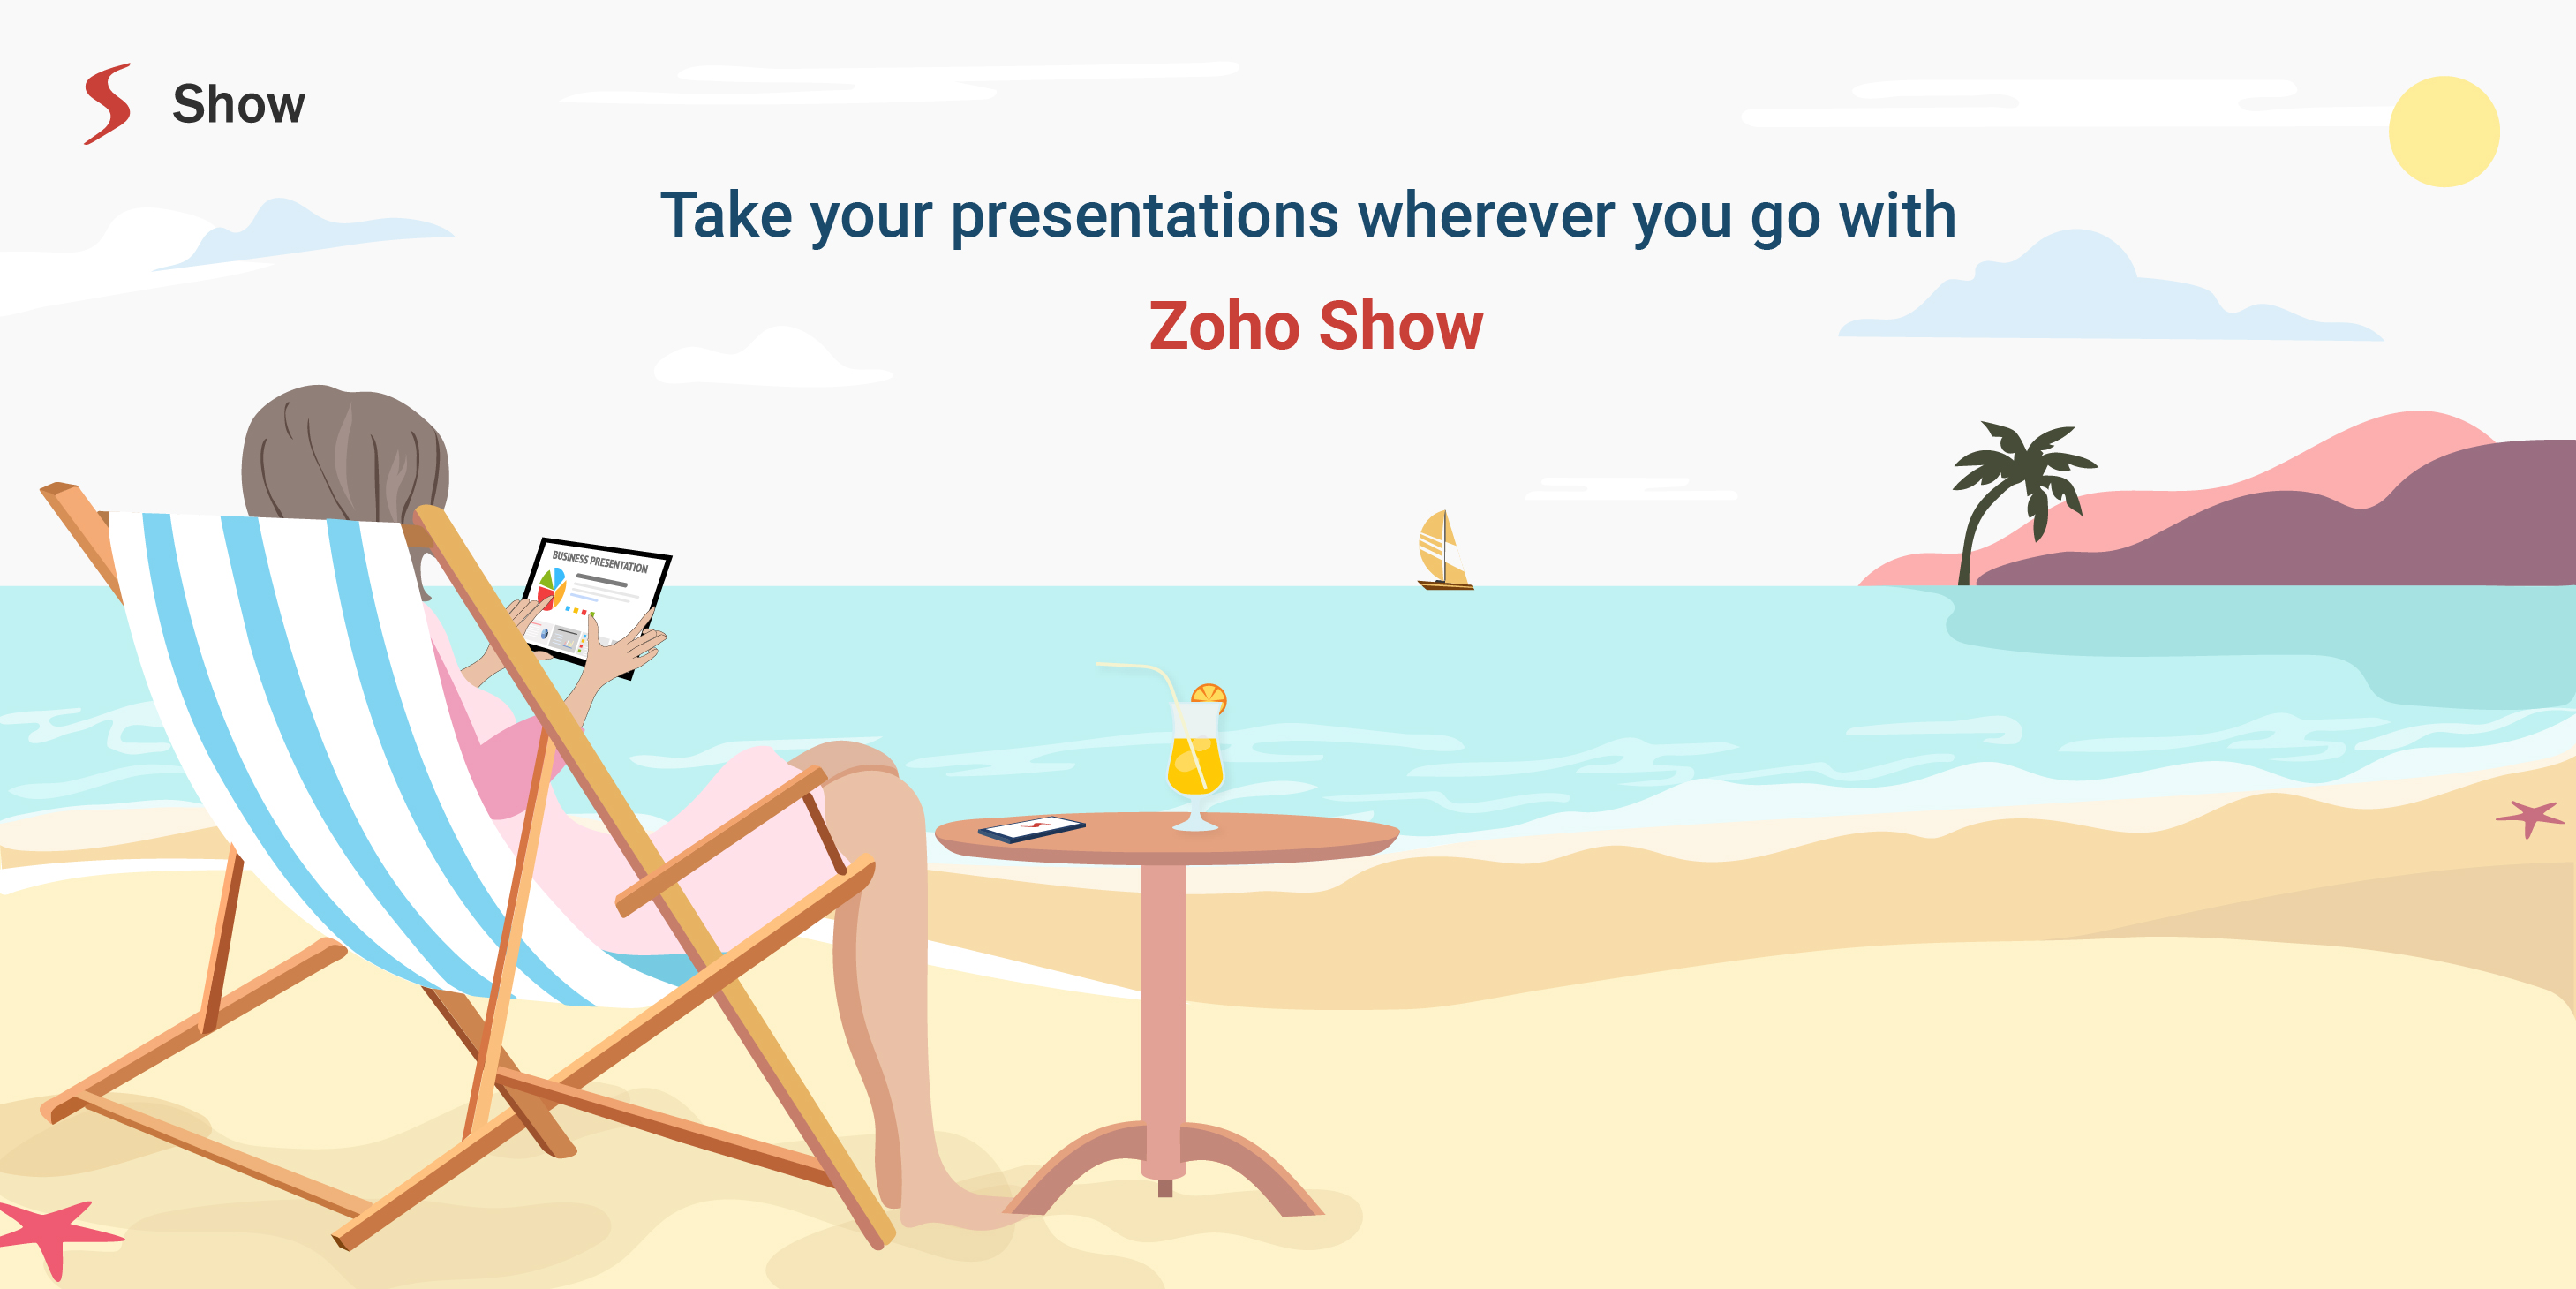 Zoho Show for Android – Carry your presentations in your pocket